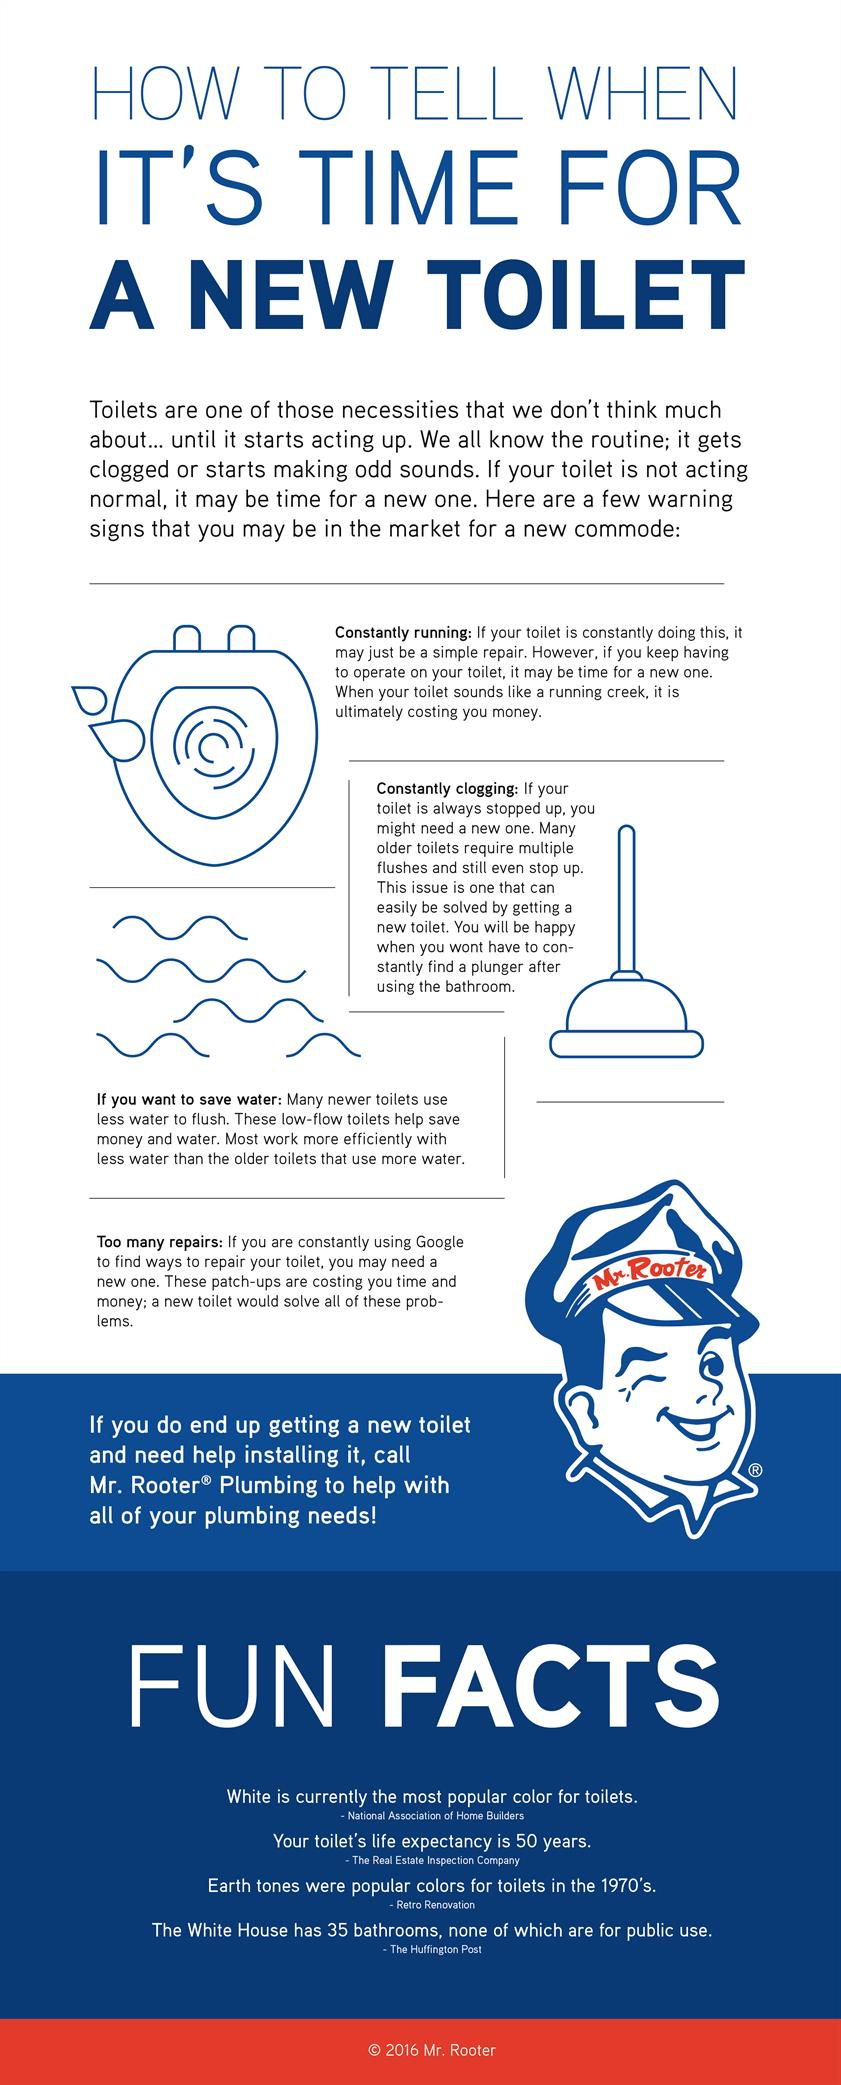 How To Tell When It's Time For A New Toilet Infographic